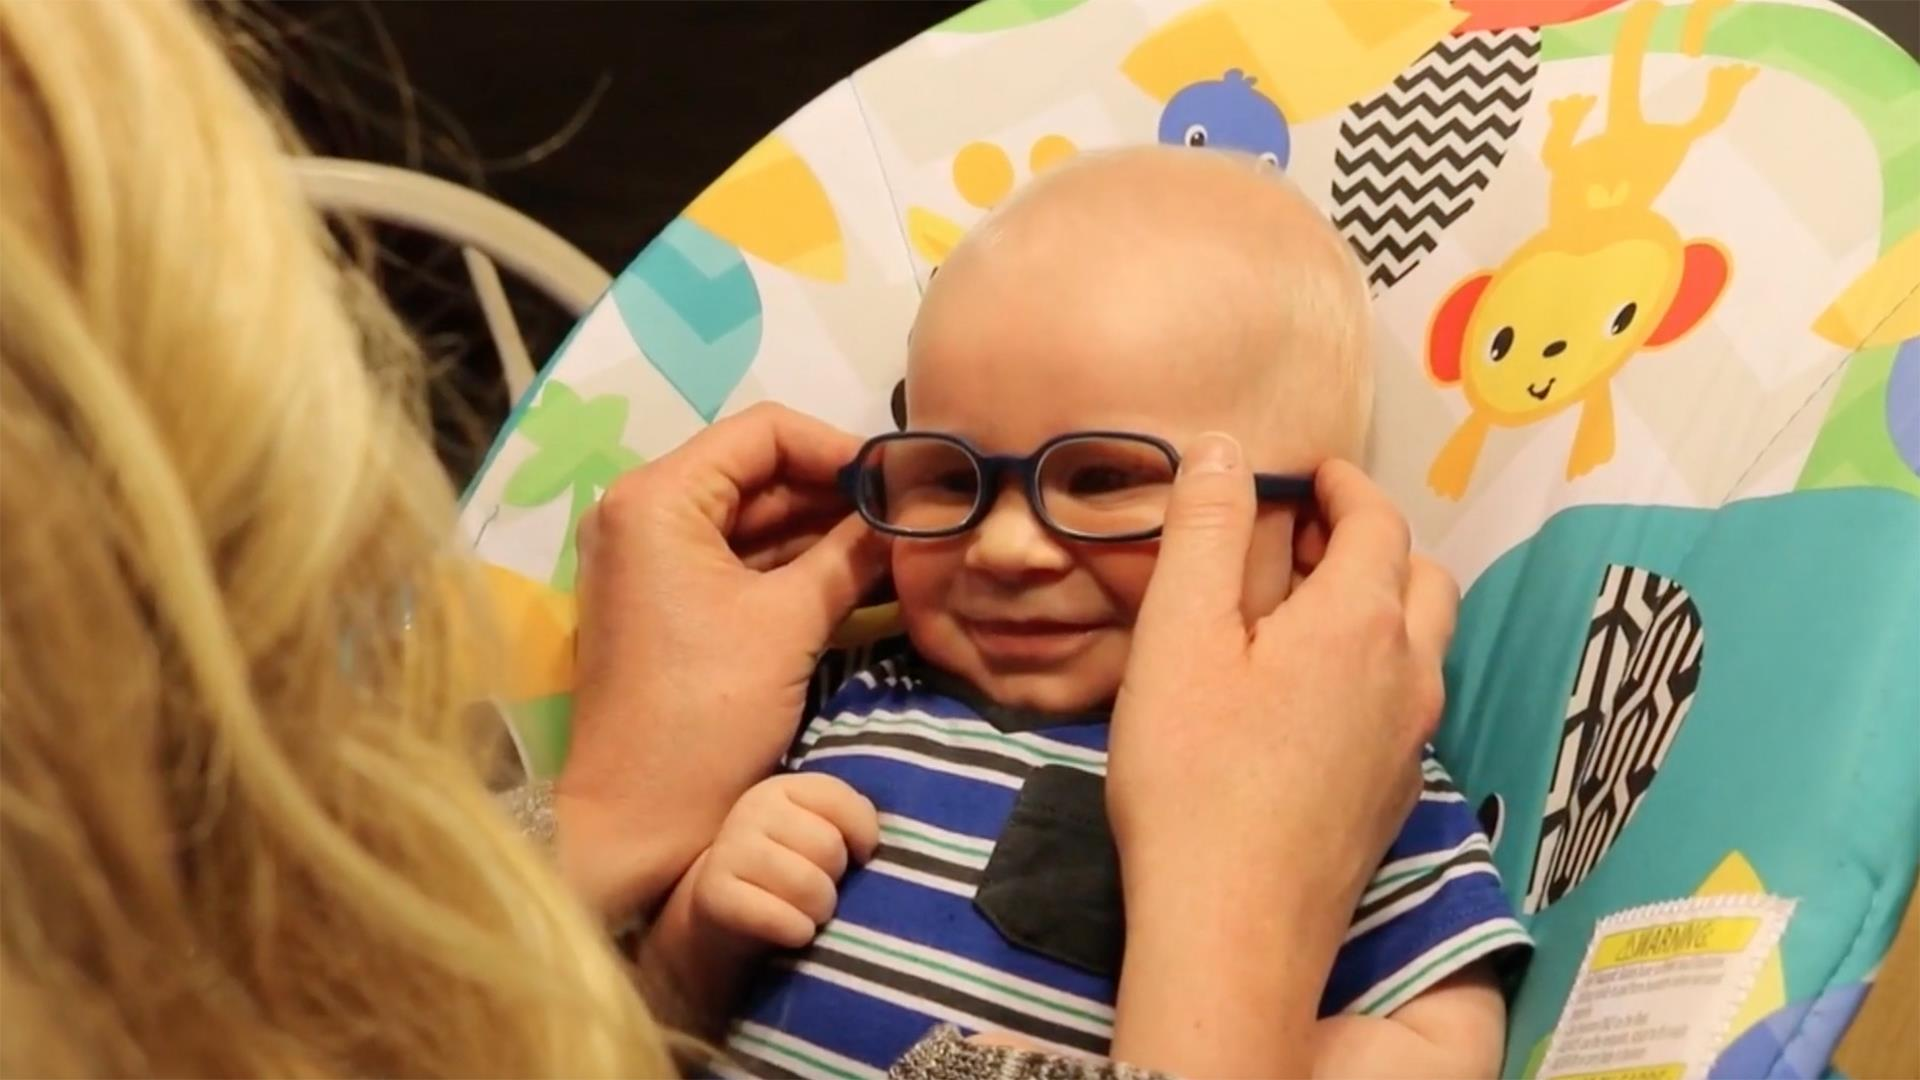 Watch the touching moment a baby sees his mom for the first time with special glasses